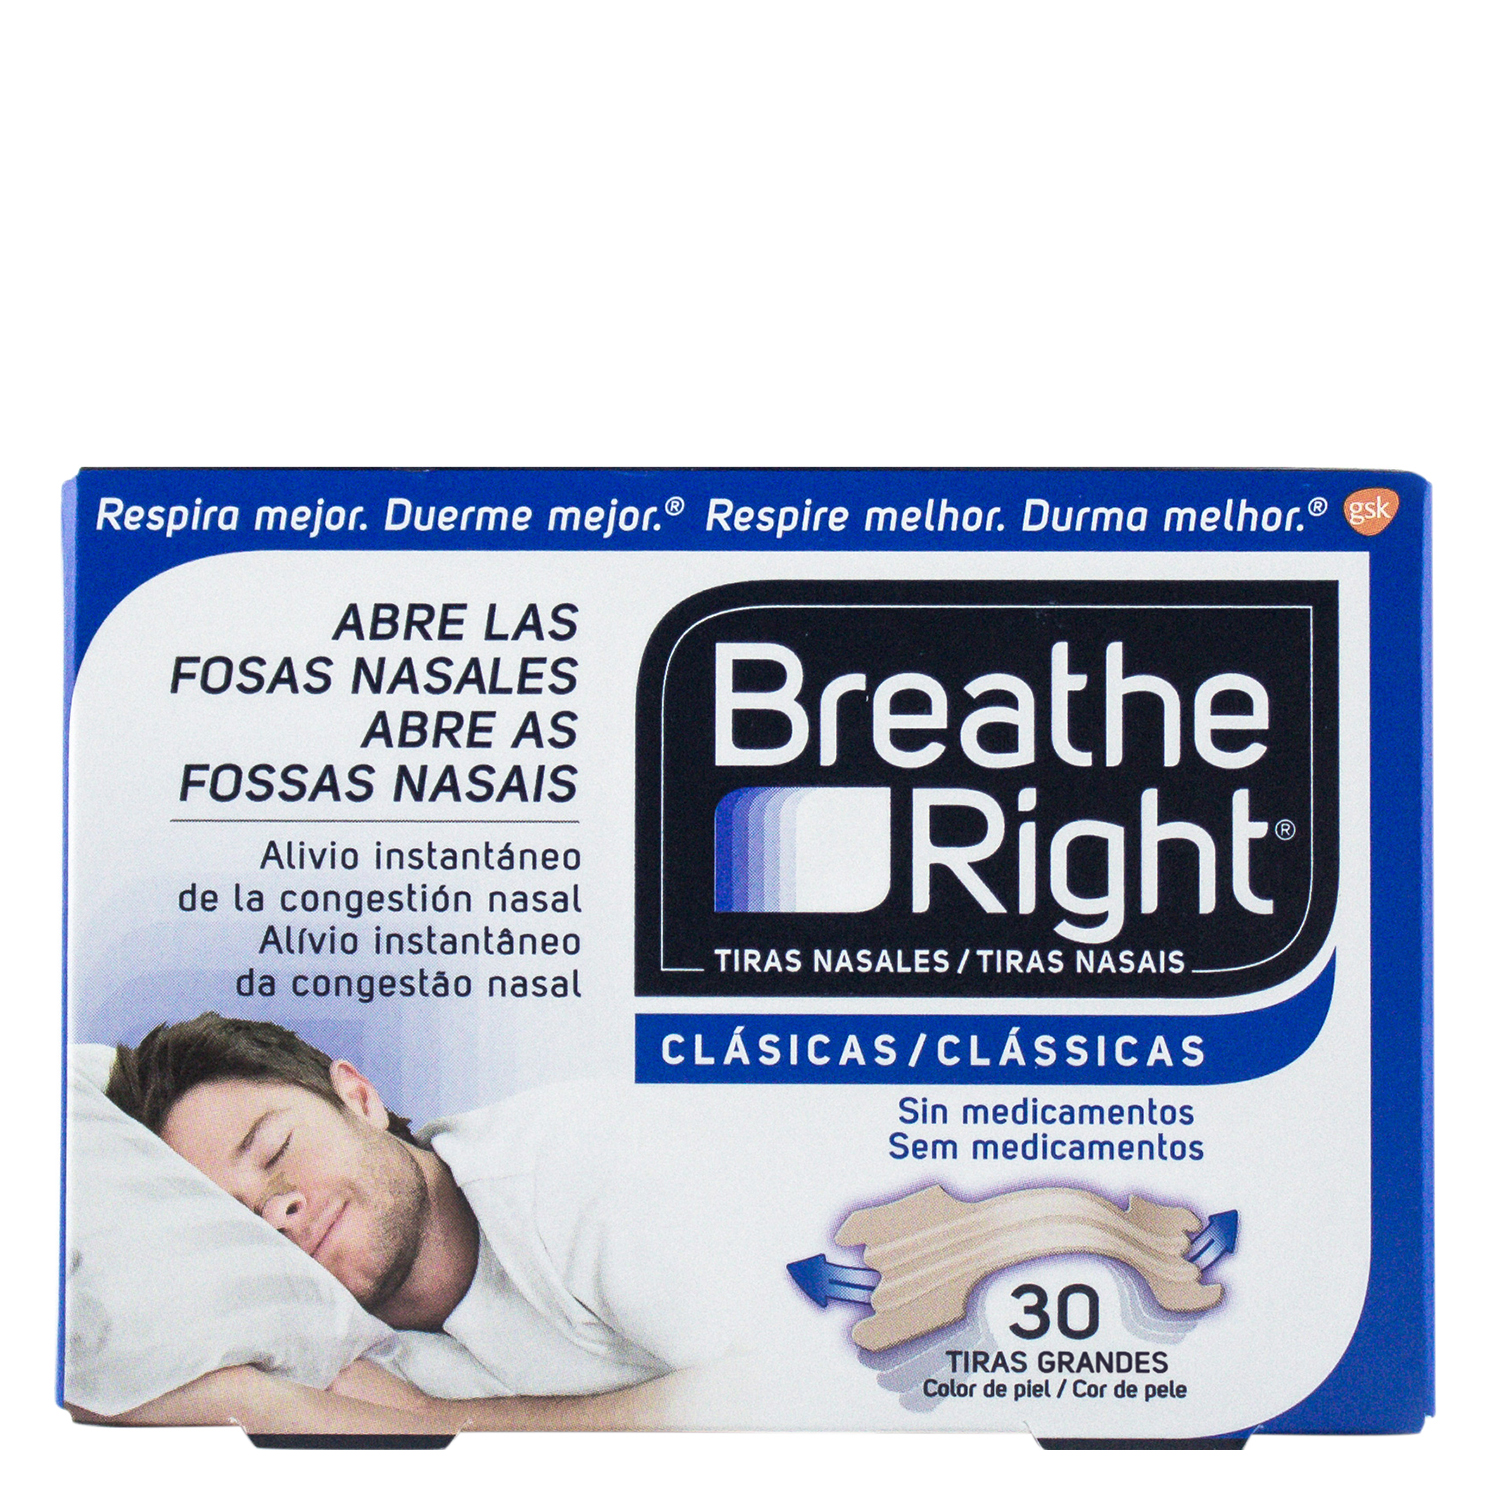 Tiras nasales clásicas tamaño grande Breathe Right 30 ud.